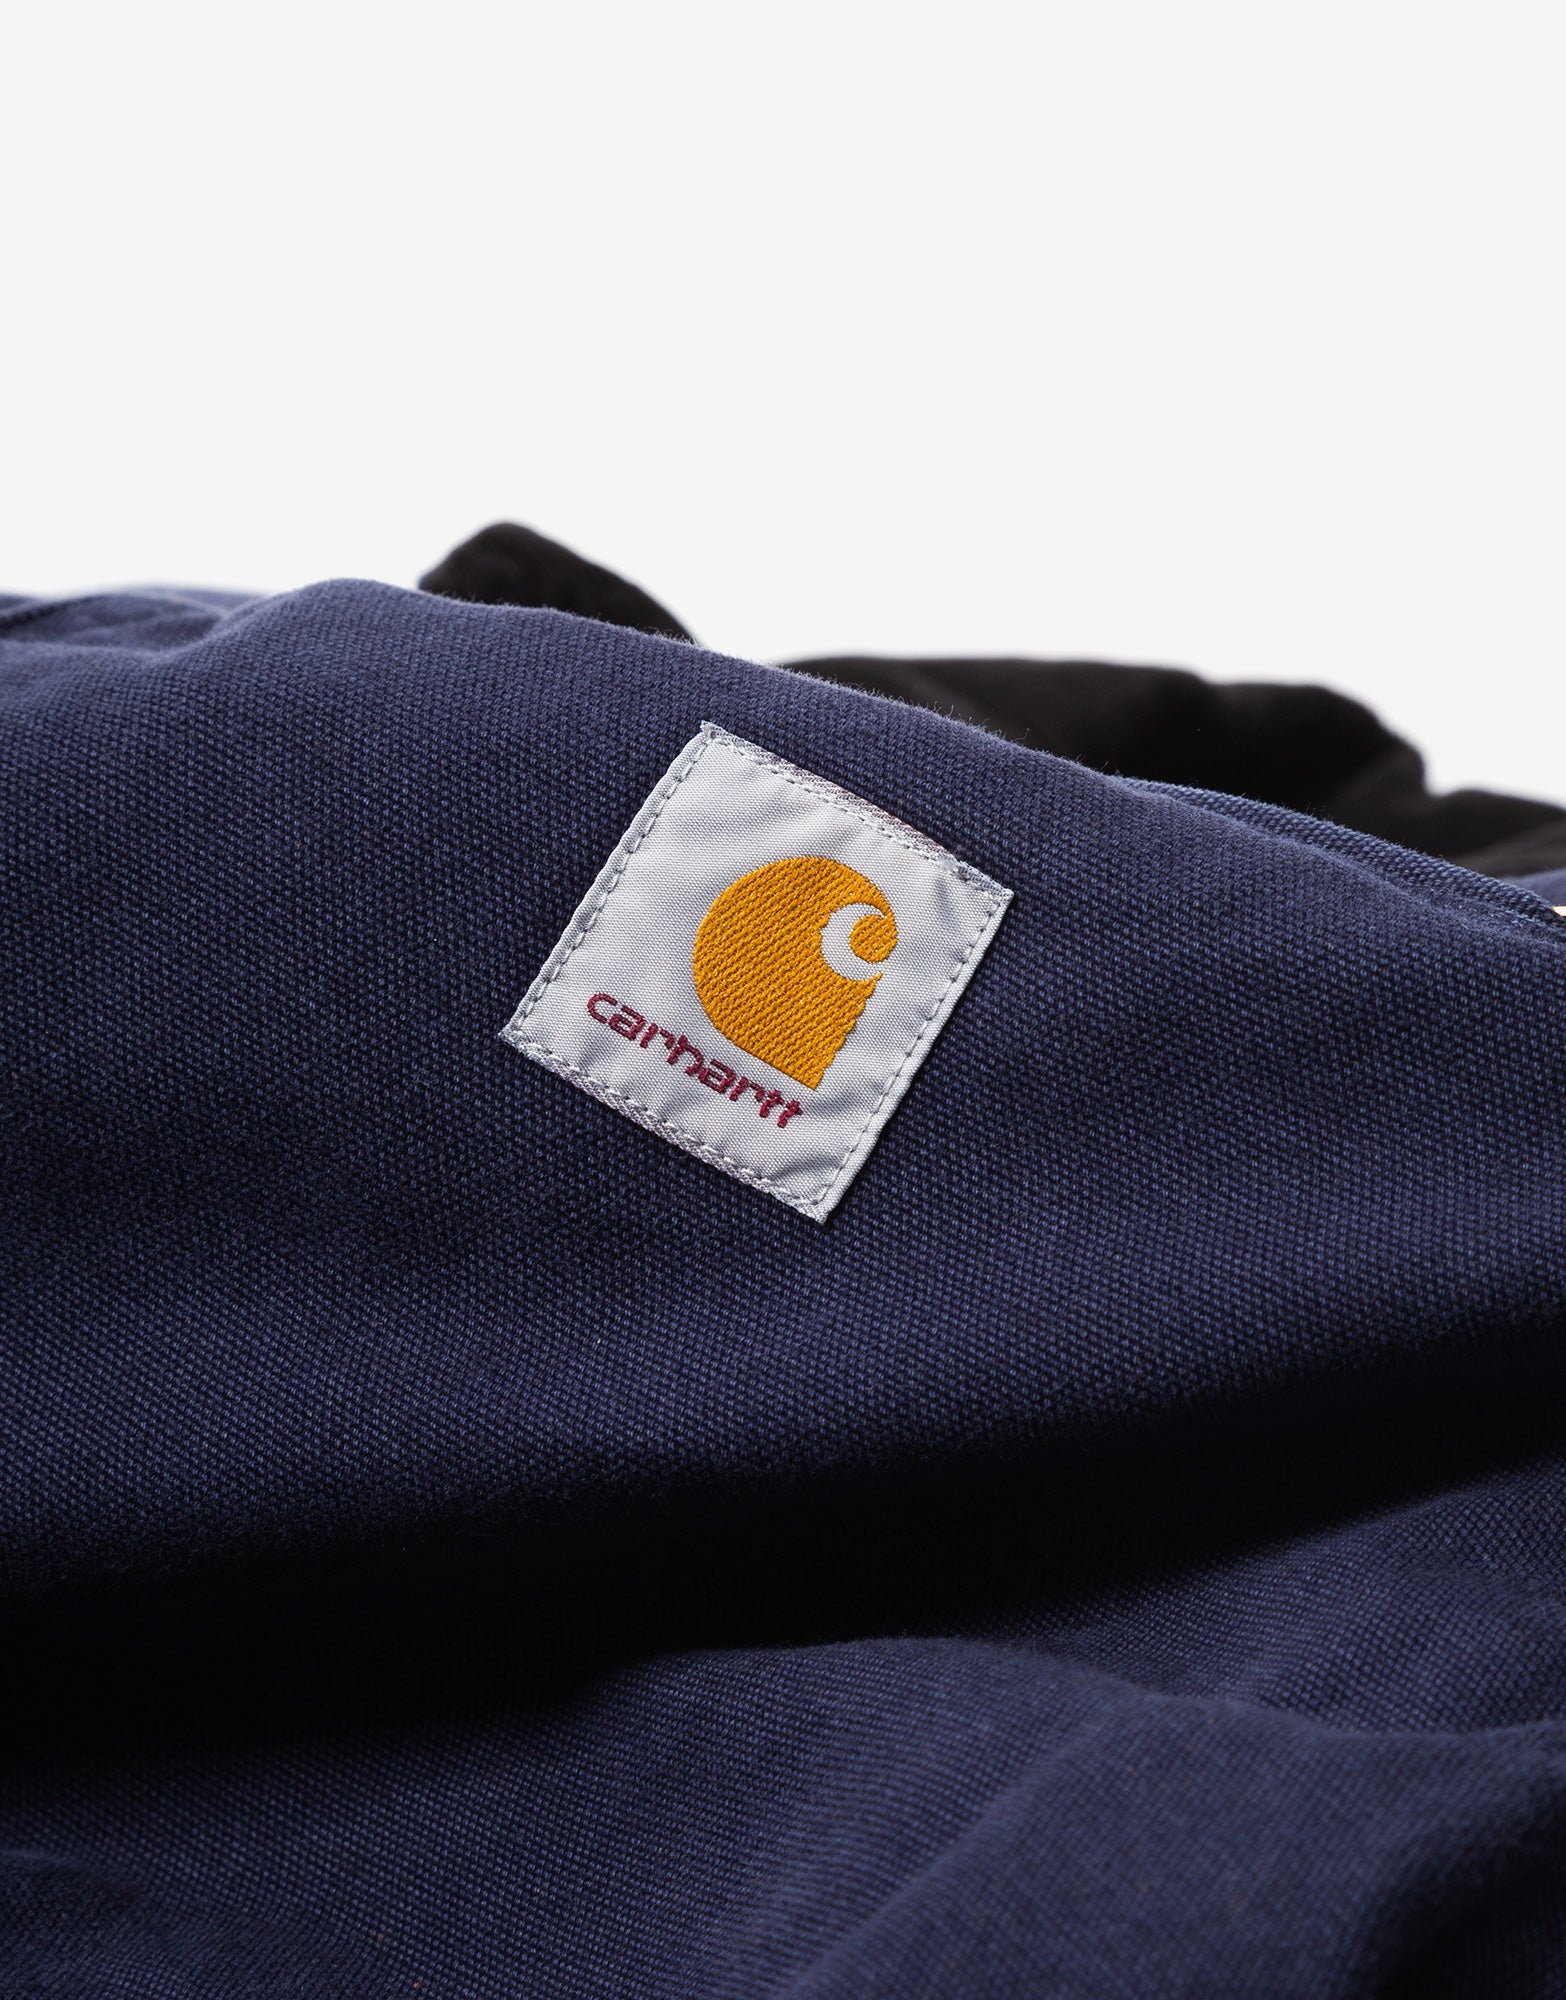 Carhartt WIP OG Detroit Jacket - Dark Navy/Black